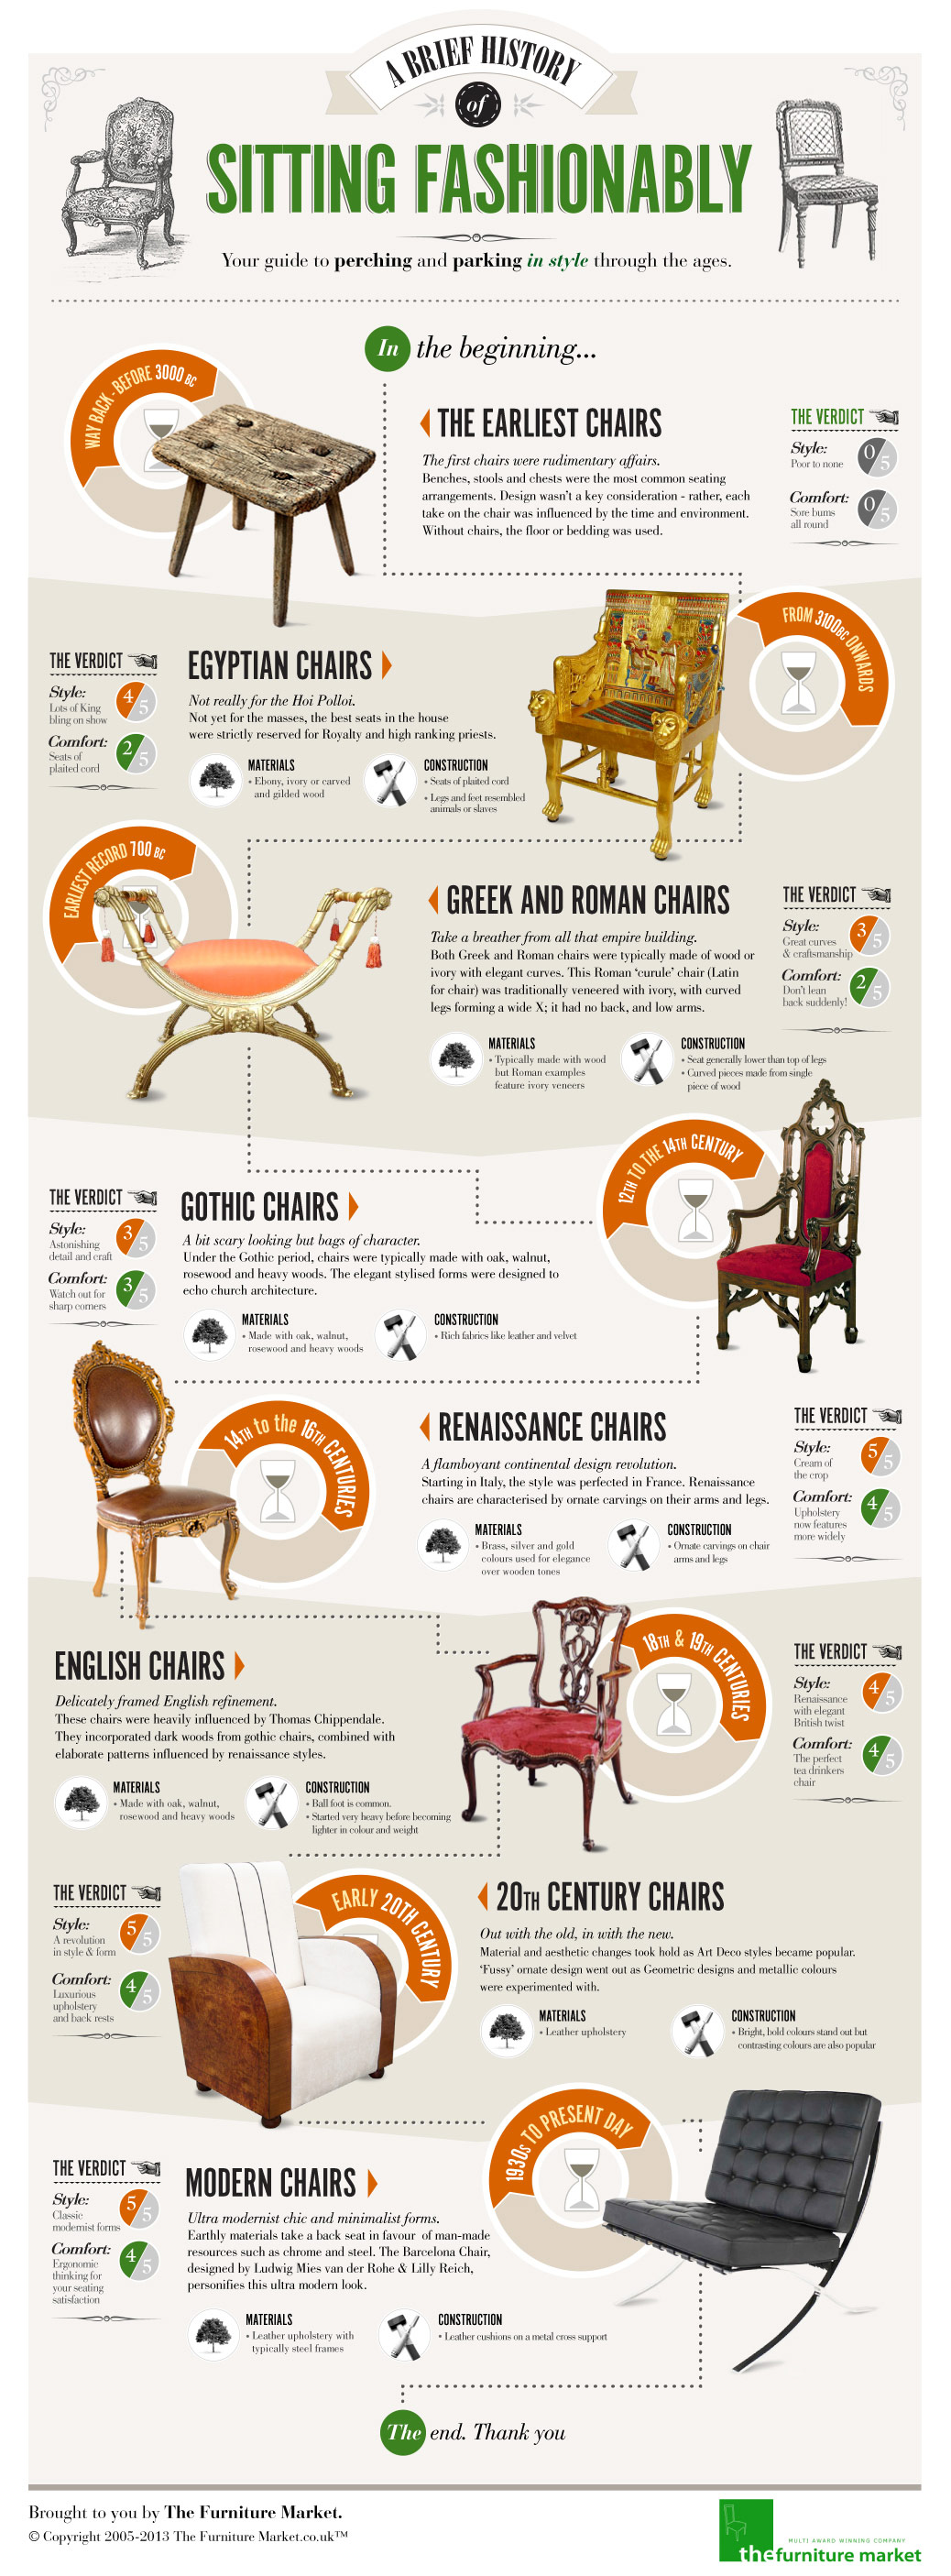 brief-history-of-sitting-fashionably